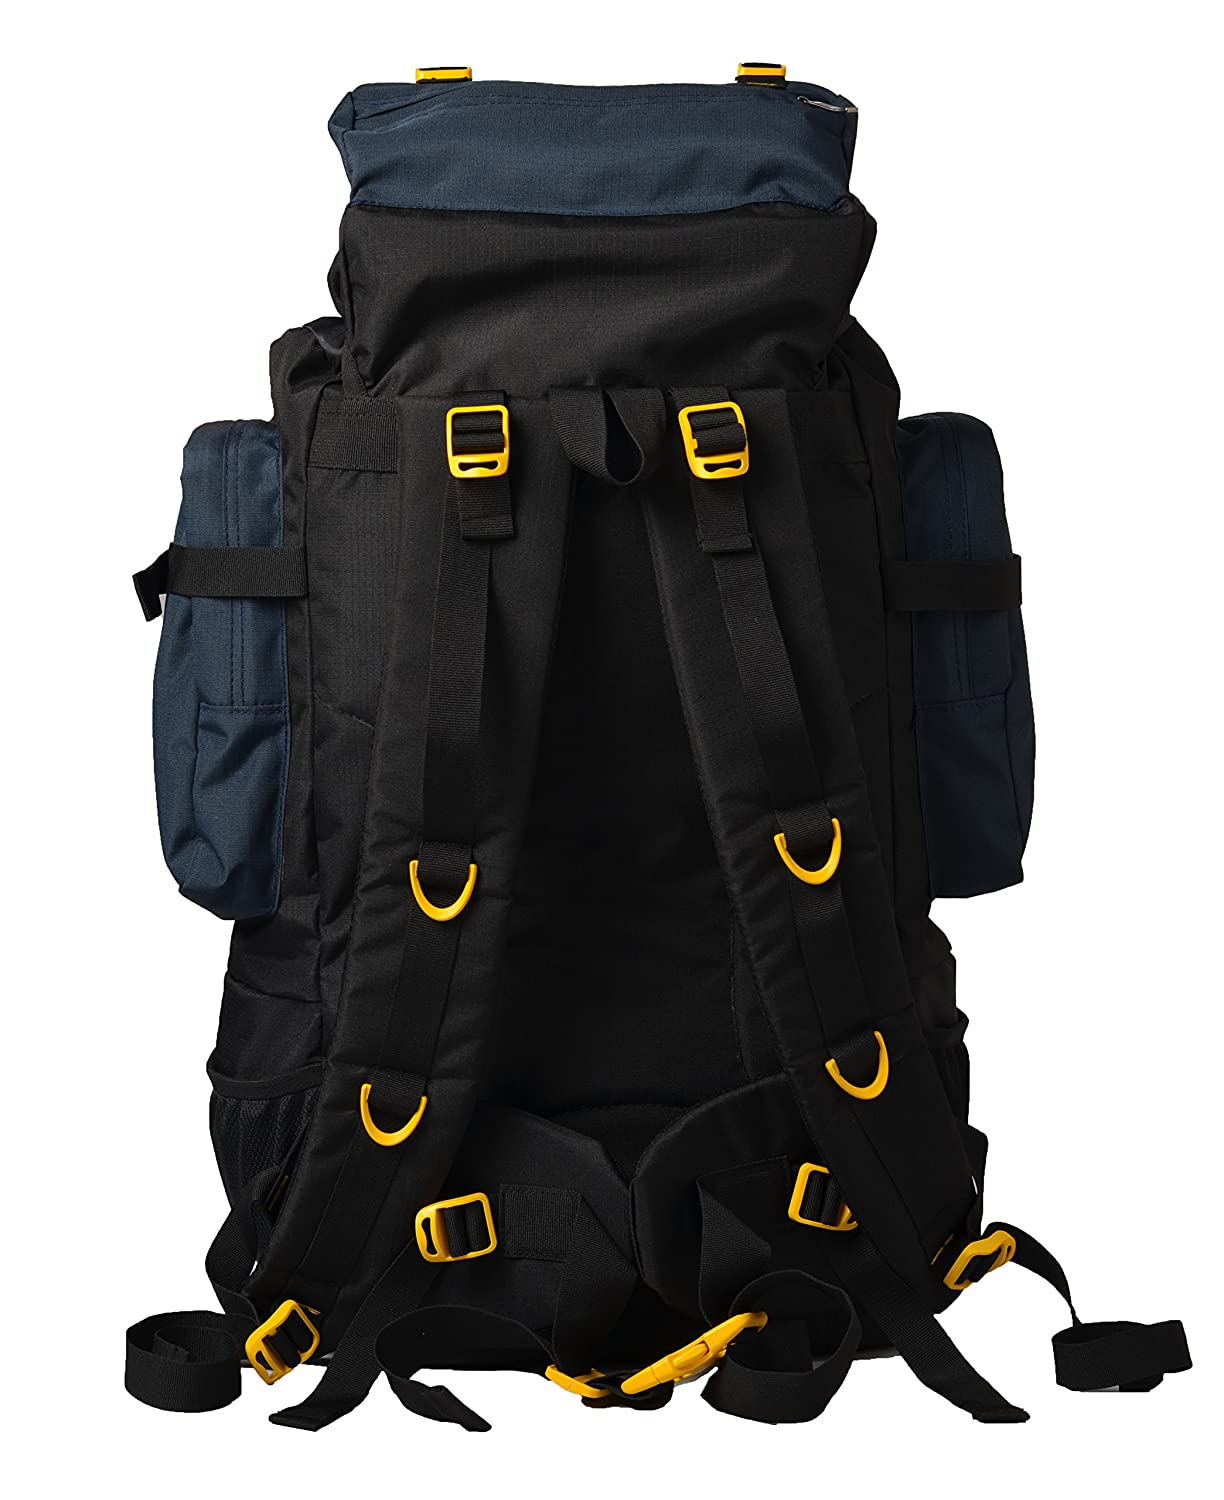 d6f87e9fe2bc3 F Gear Military Neutron Polyester 50 Ltrs Blk NB Checks Rucksack (2748)   Amazon.in  Bags